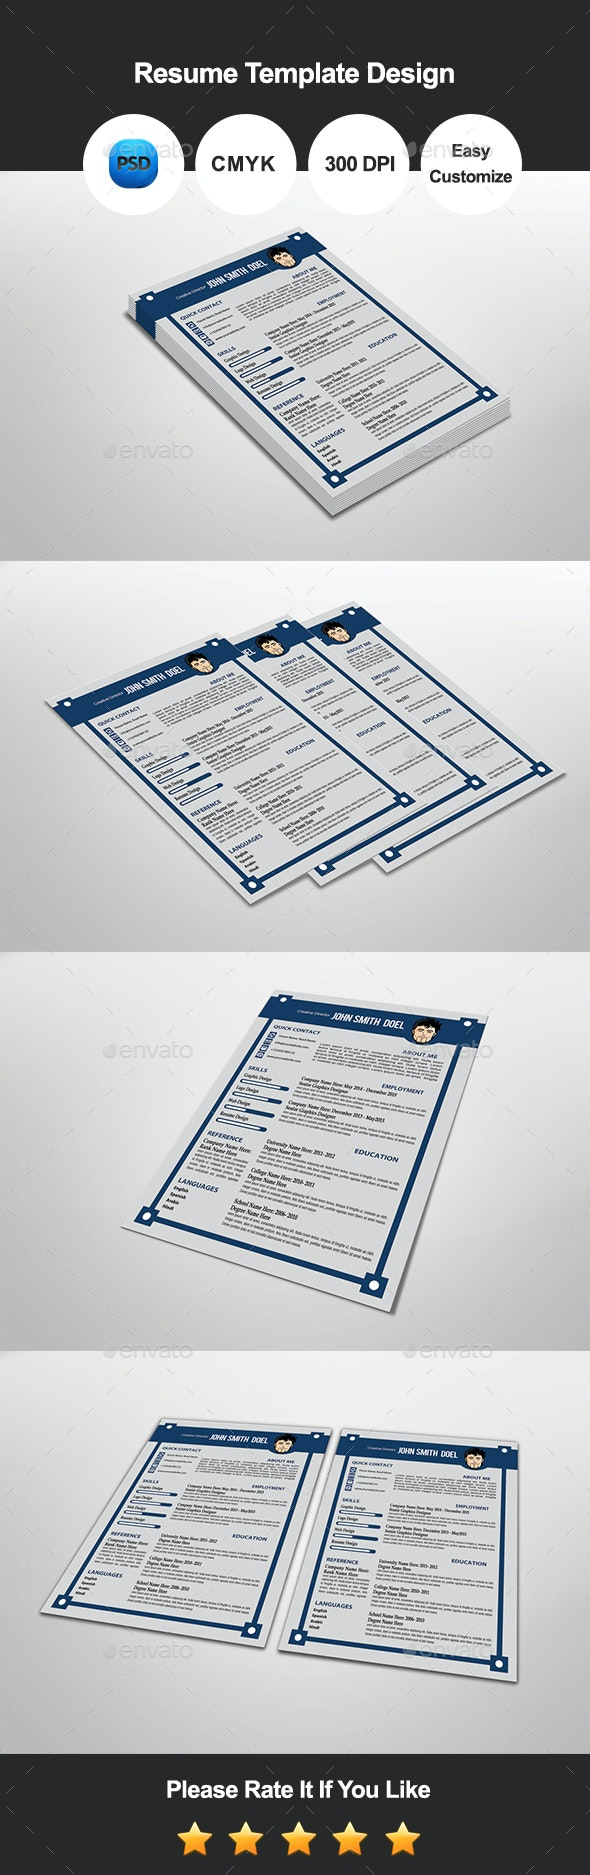 Tanli Resume Template Design - Resumes Stationery